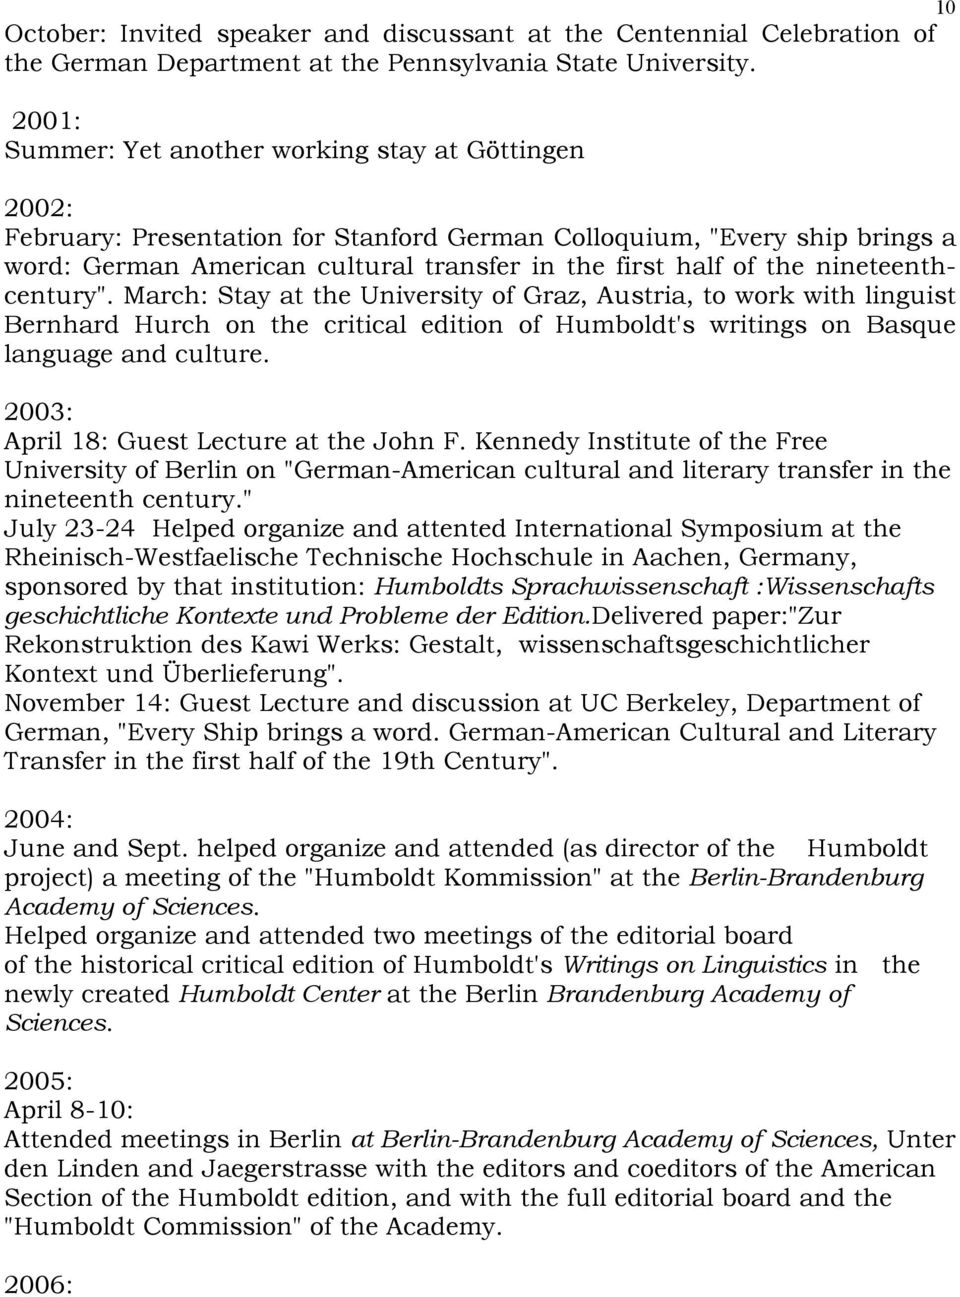 "nineteenthcentury"". March: Stay at the University of Graz, Austria, to work with linguist Bernhard Hurch on the critical edition of Humboldt's writings on Basque language and culture."